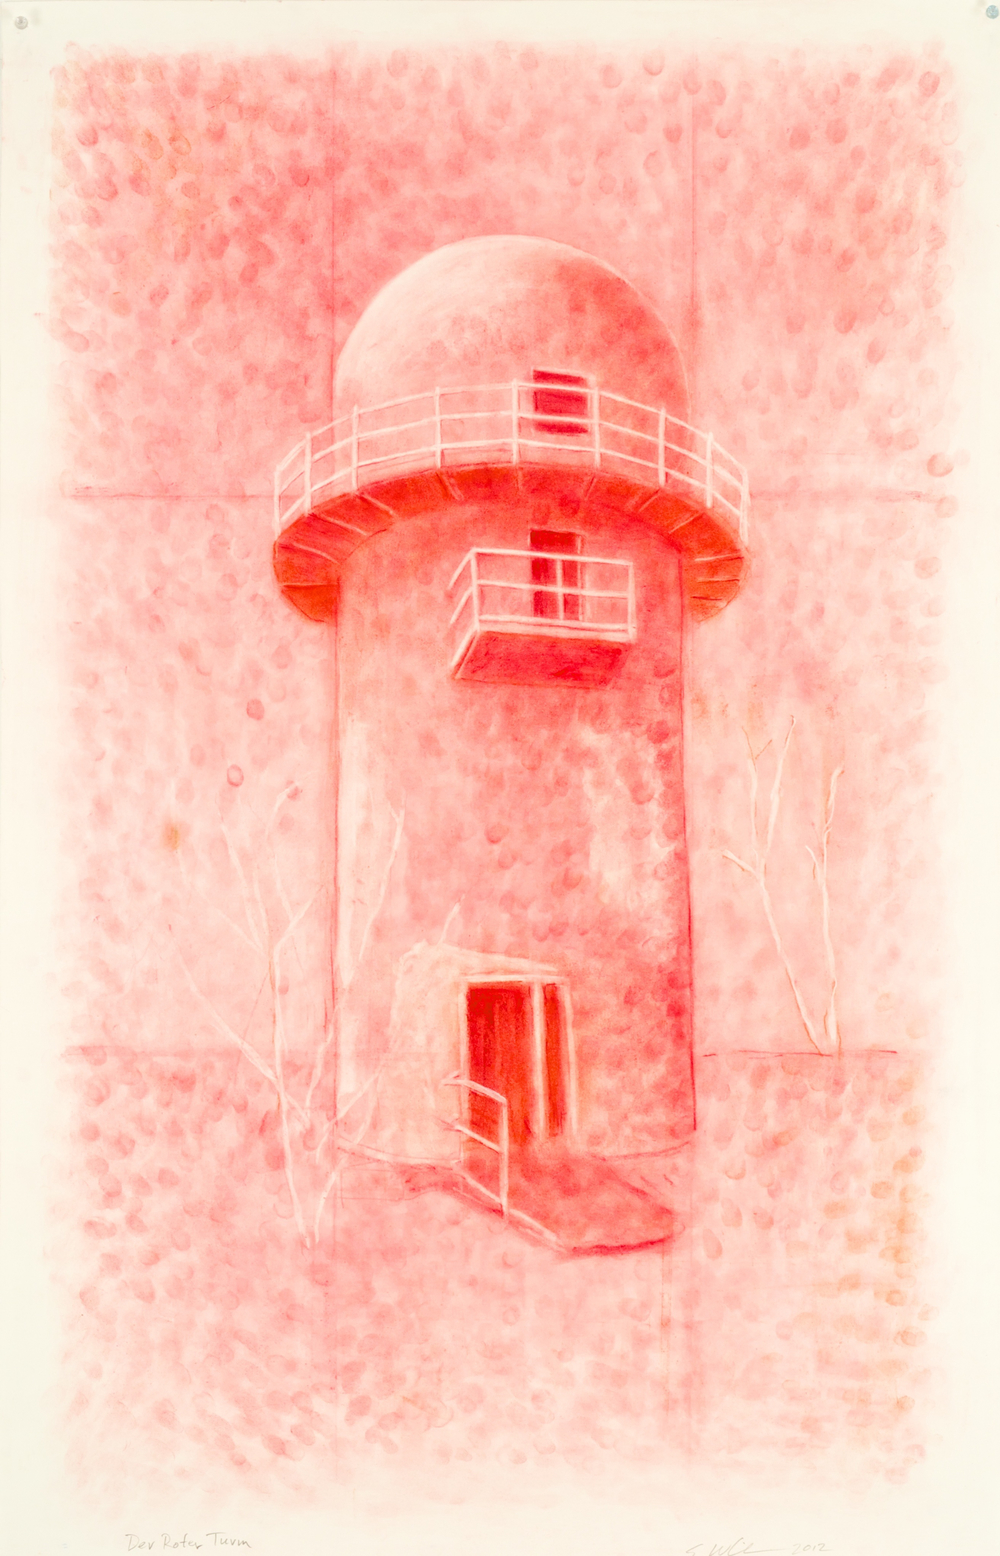 Berlin (Der Roter Turm), 2012, pastel on paper, 48 x 30 inches